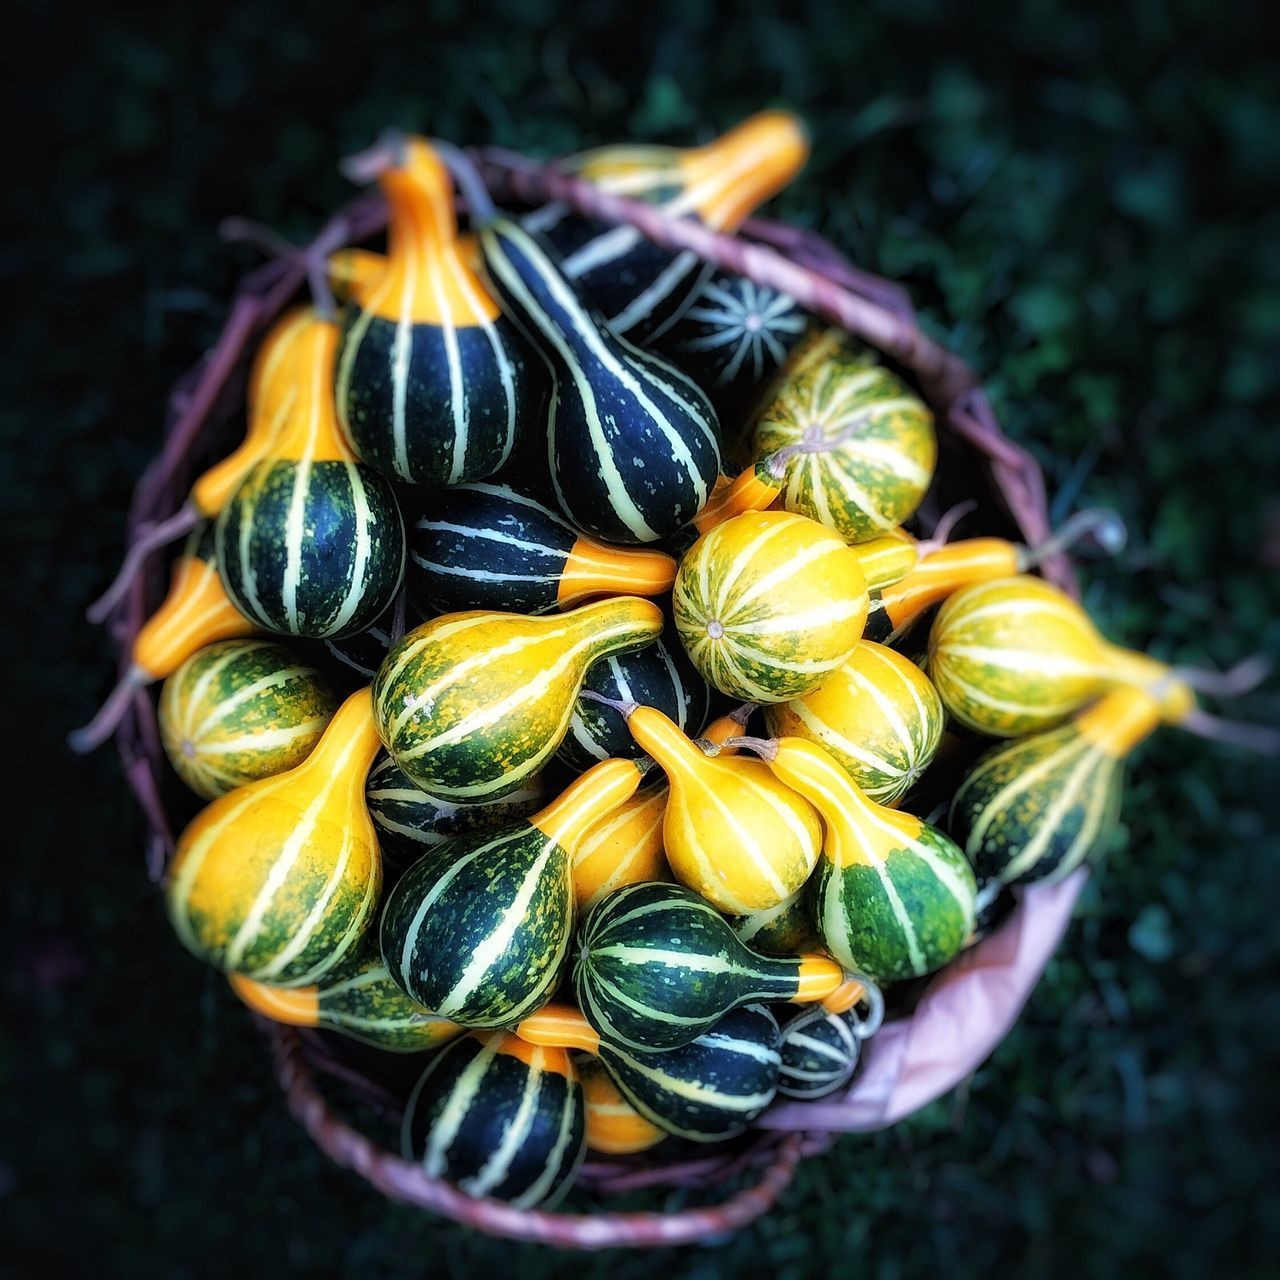 Stripes&Stripes Pumpkins Pumpkin Yellow Green Autumn Food Collection Close-up Food And Drink Group Of Objects Focus On Foreground Abundance Halloween